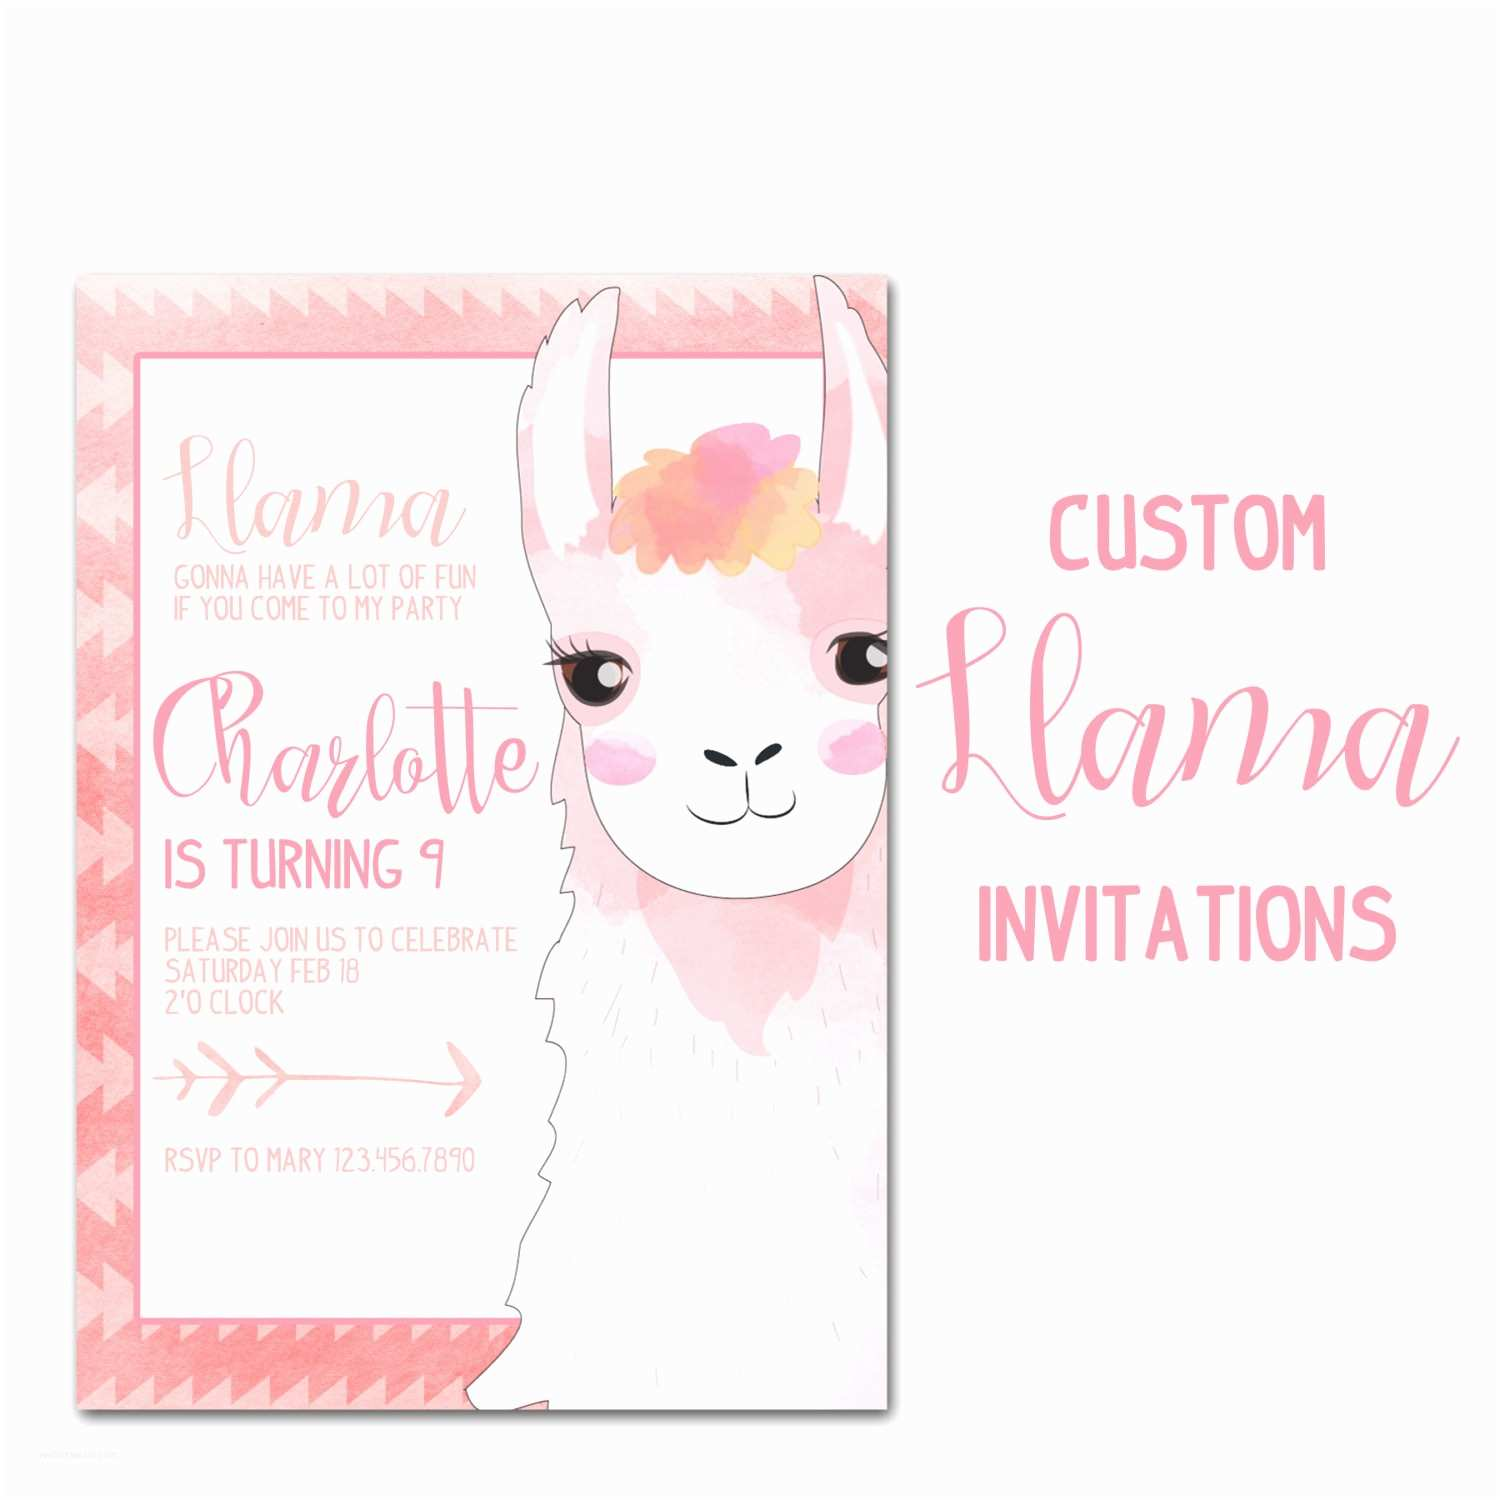 Customized Birthday Invitations Llama Birthday Party Invitation Custom Animal Birthday